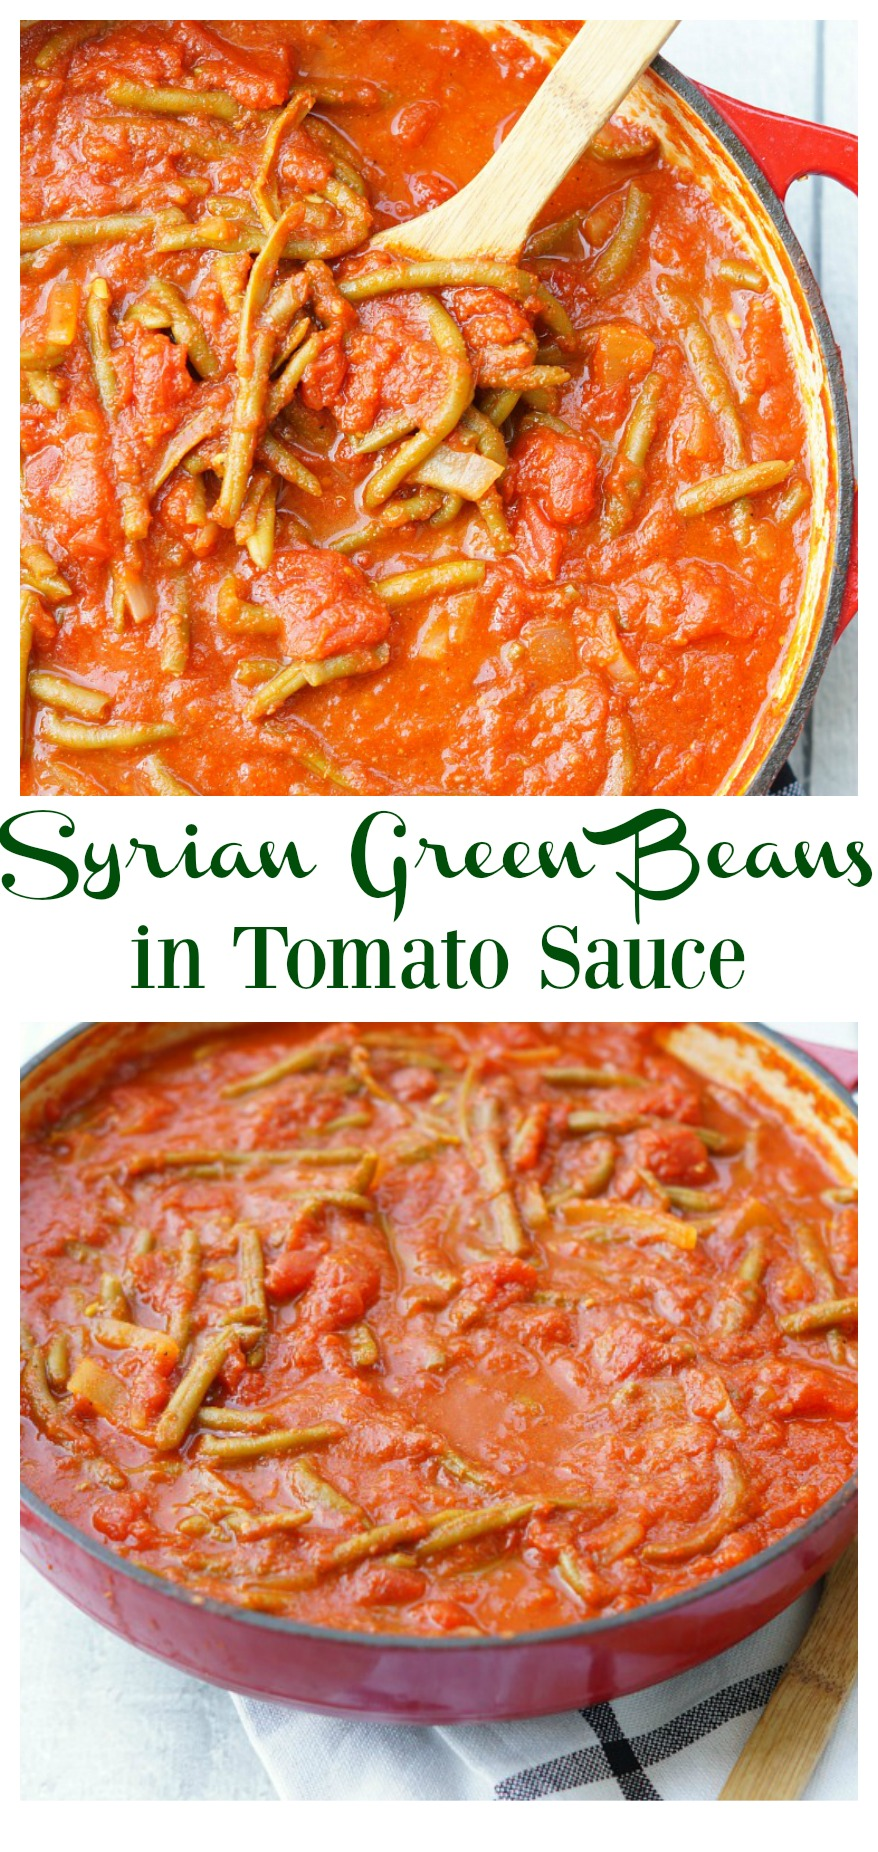 Lebanese Green Beans in Tomato Sauce is an amazing middle-eastern side dish recipe! Everyone loves these green beans in tomato sauce!